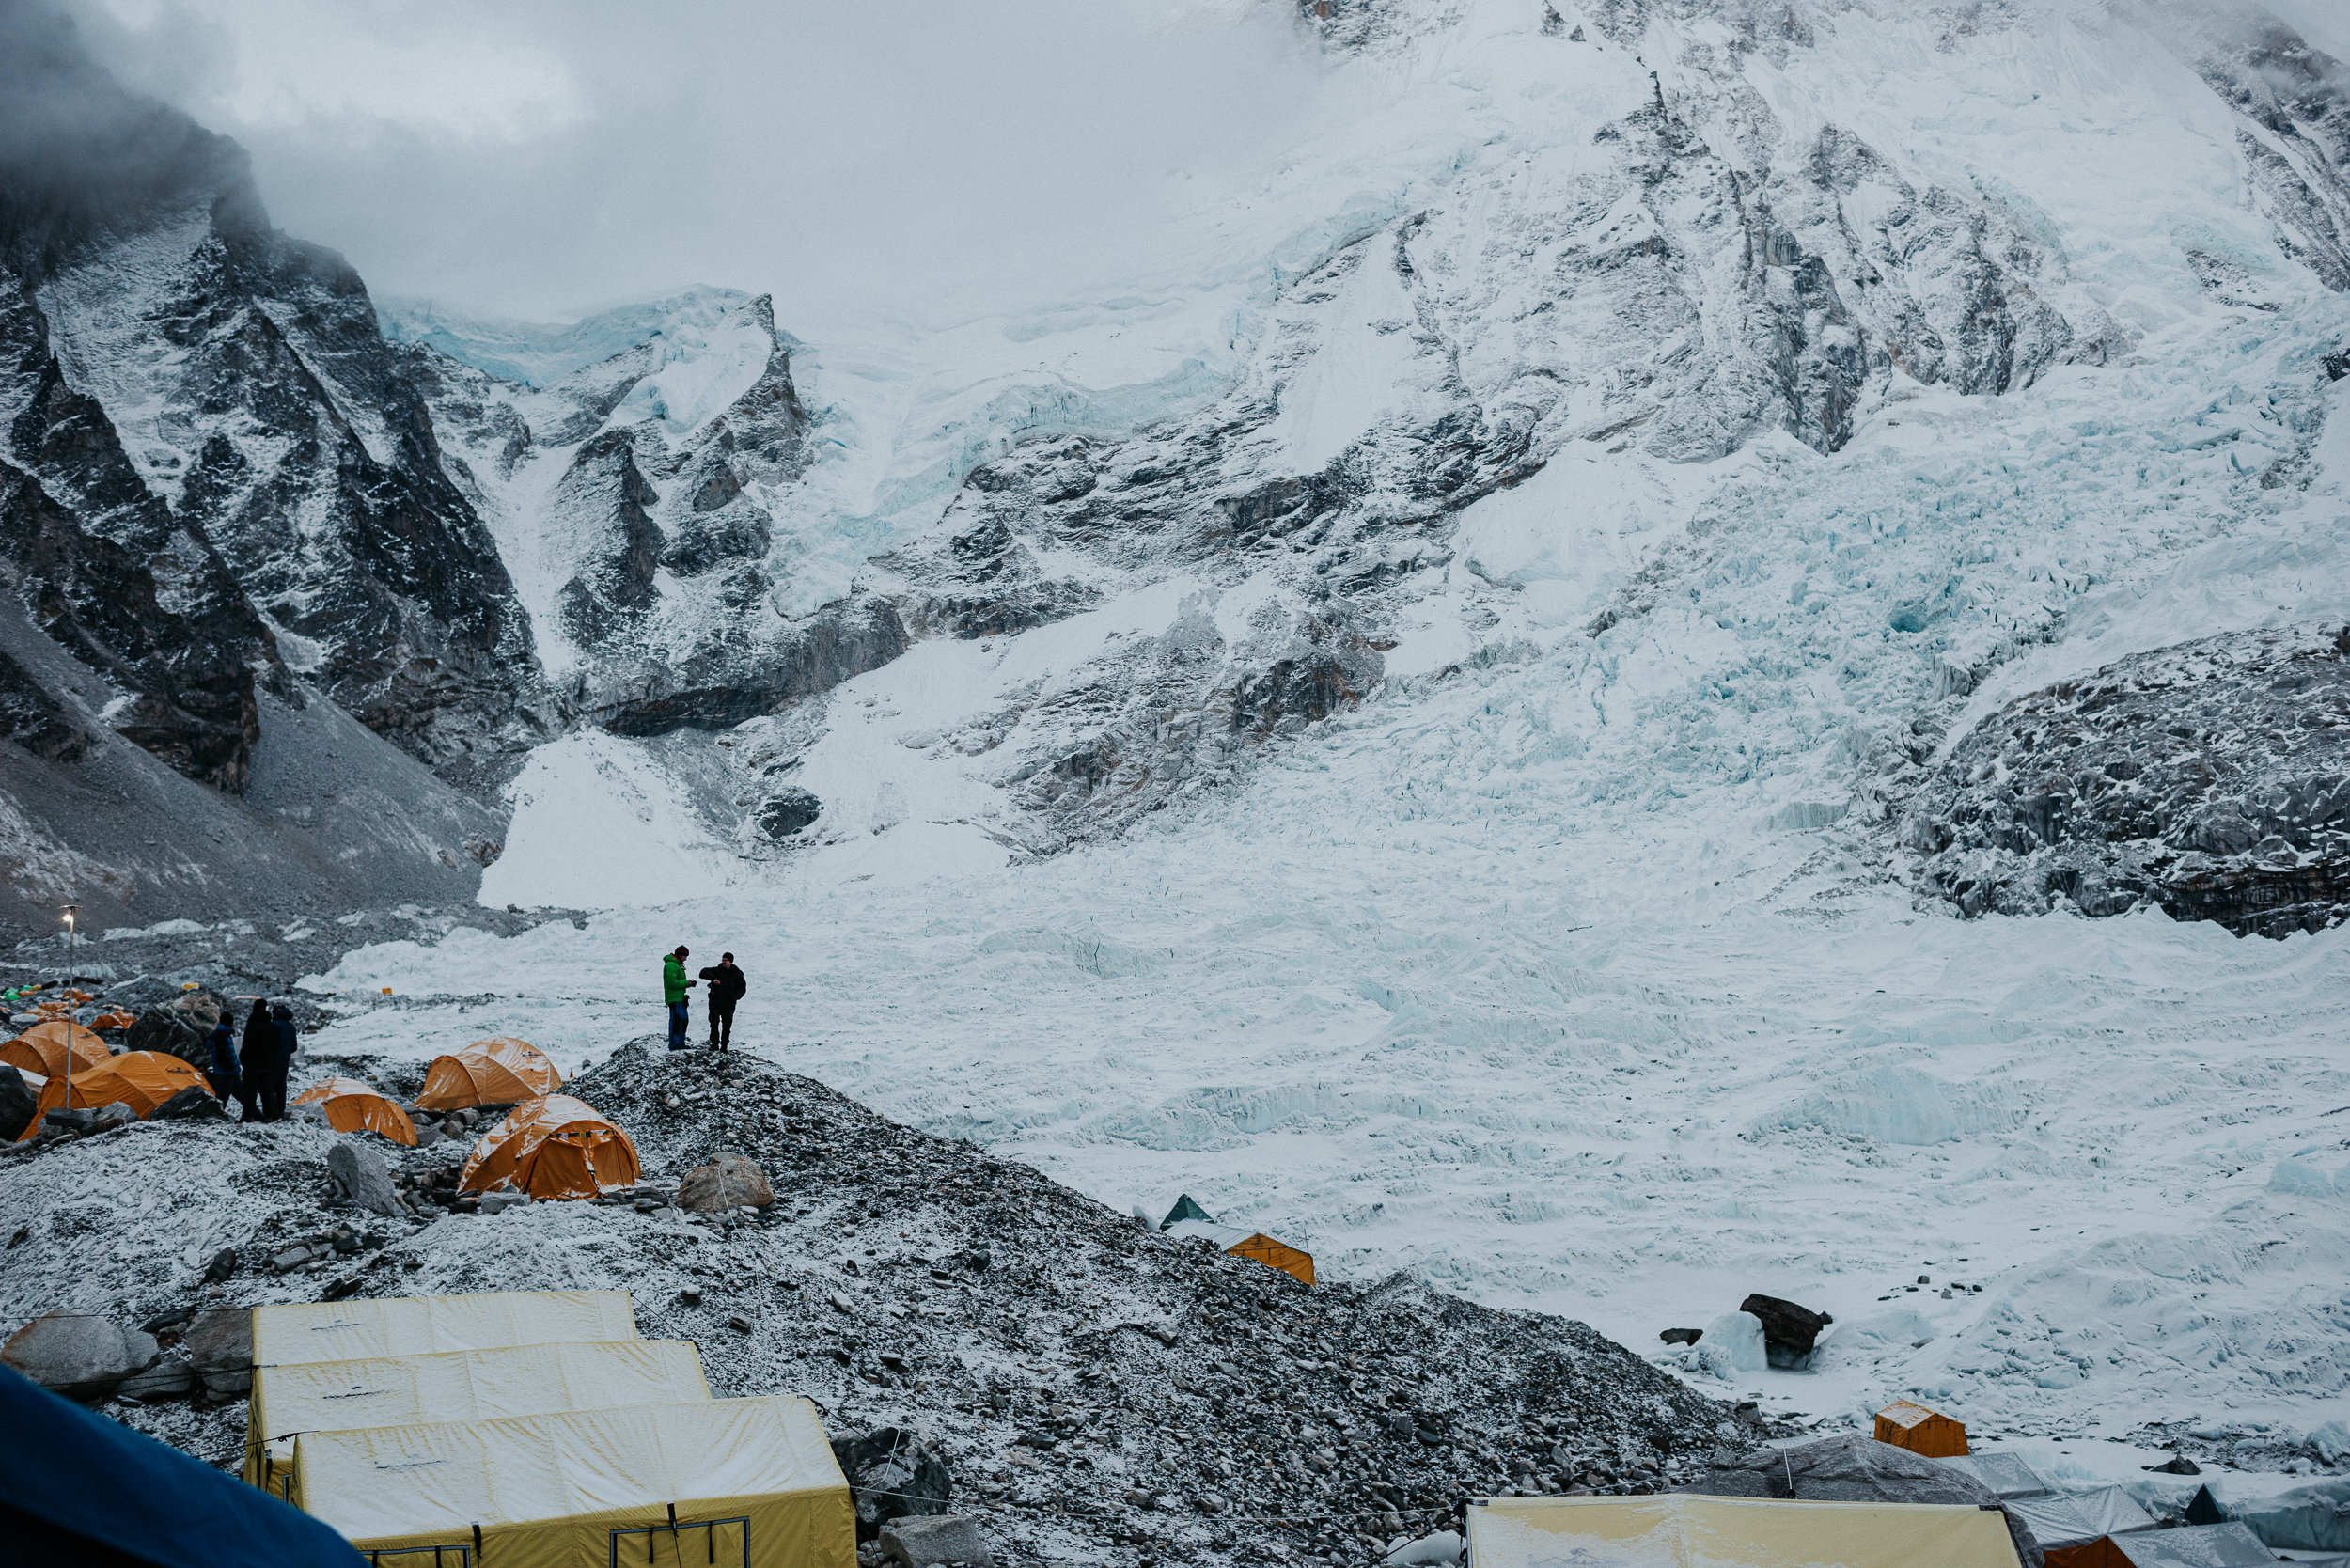 Nepal_EverestBaseCamp_2019_TaraShupe_Photography_DSC_4326.jpg